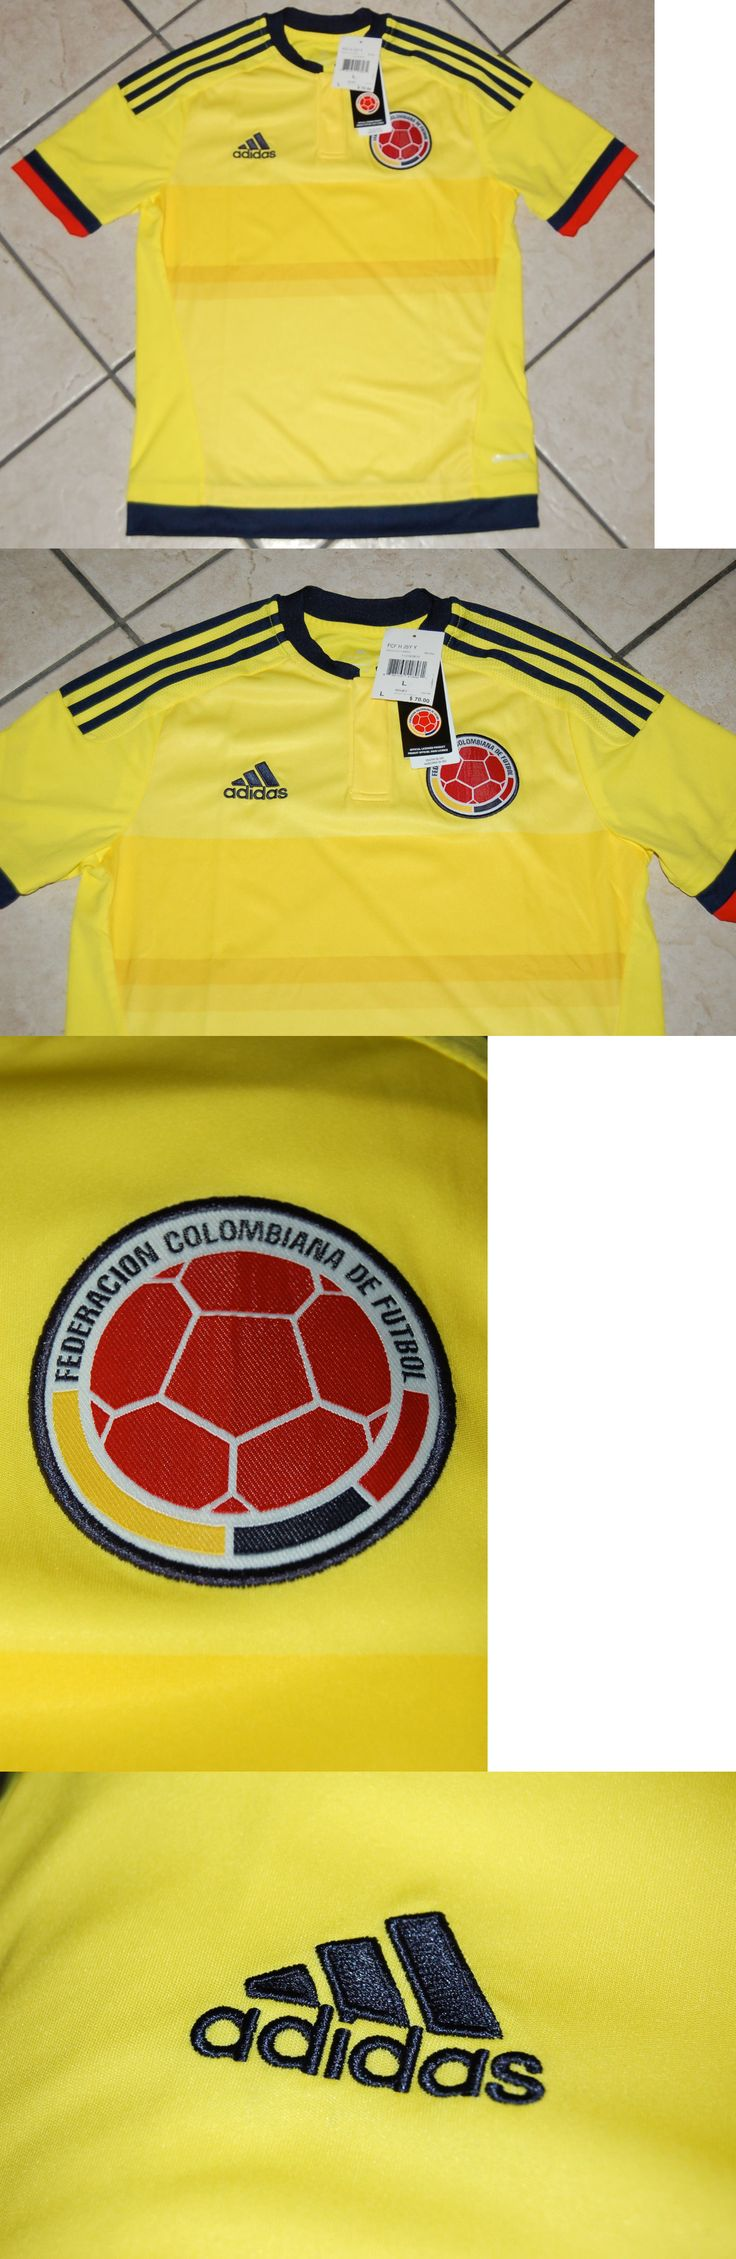 Youth 159099: Adidas Colombia Home Soccer Jersey, M62782, Yellow Navy, Youth Sizes -> BUY IT NOW ONLY: $49.99 on eBay!